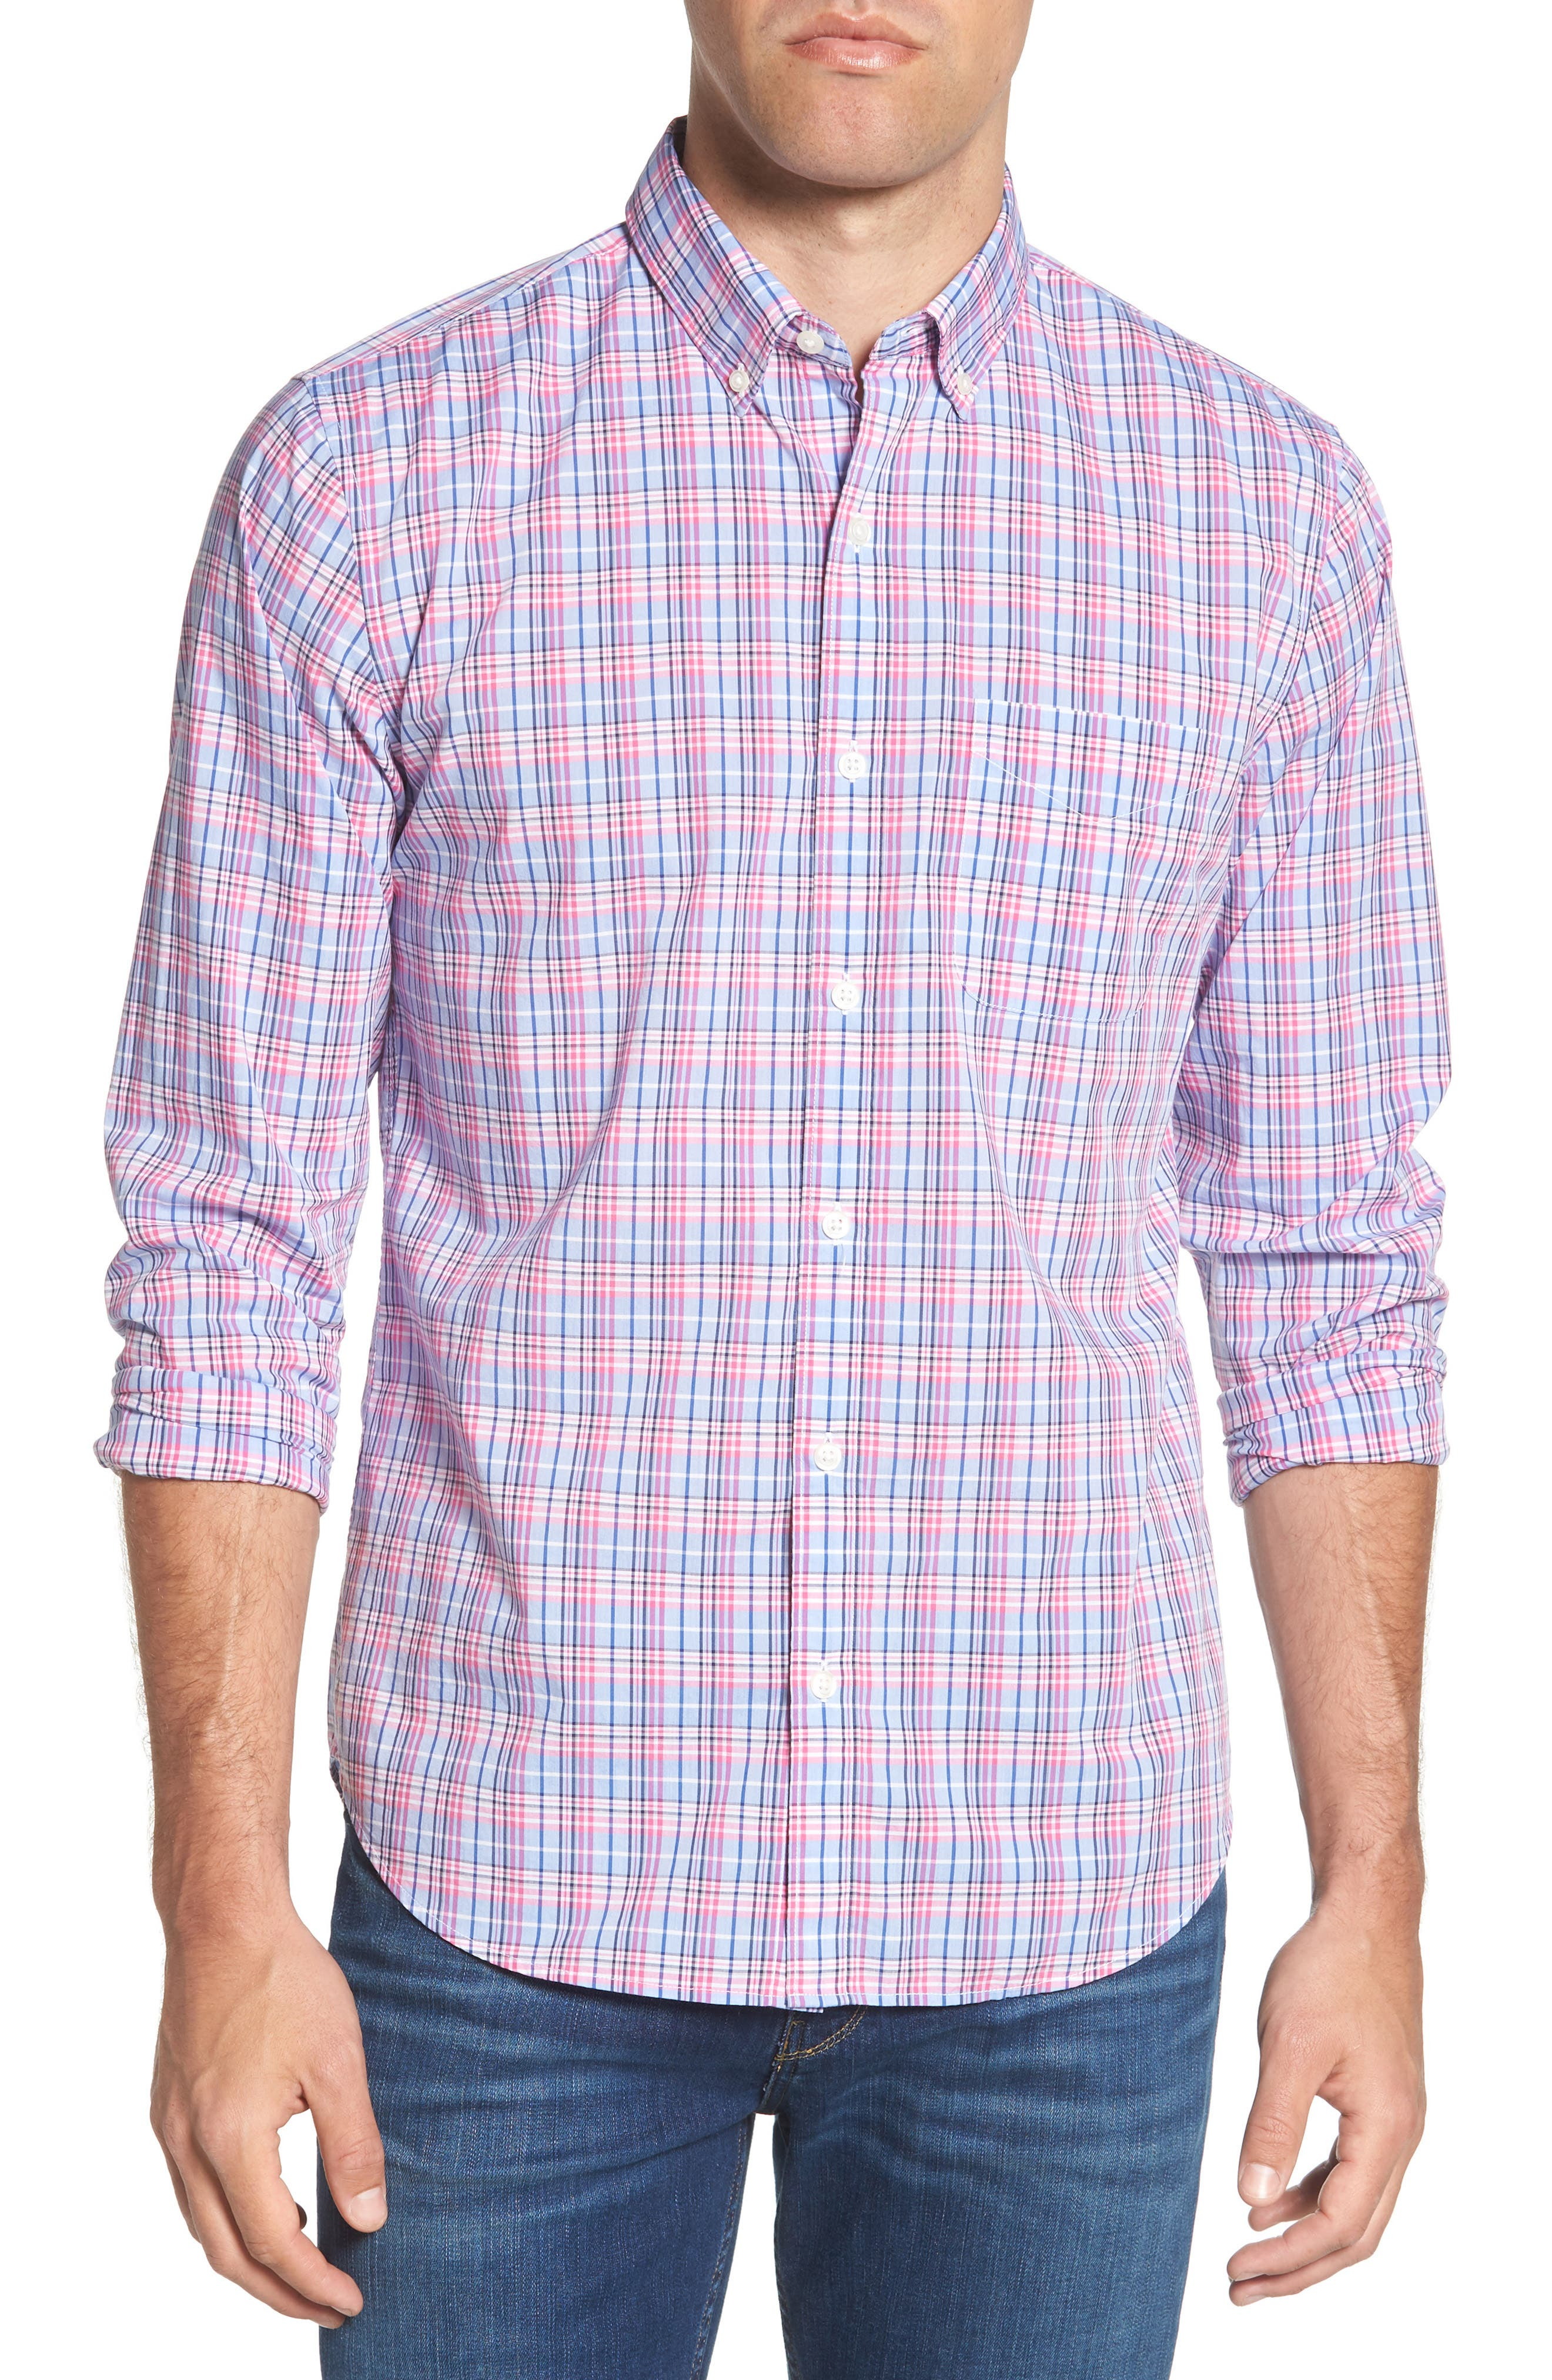 Summerweight Slim Fit Plaid Sport Shirt,                         Main,                         color, Basswood Plaid - Pink Rocket